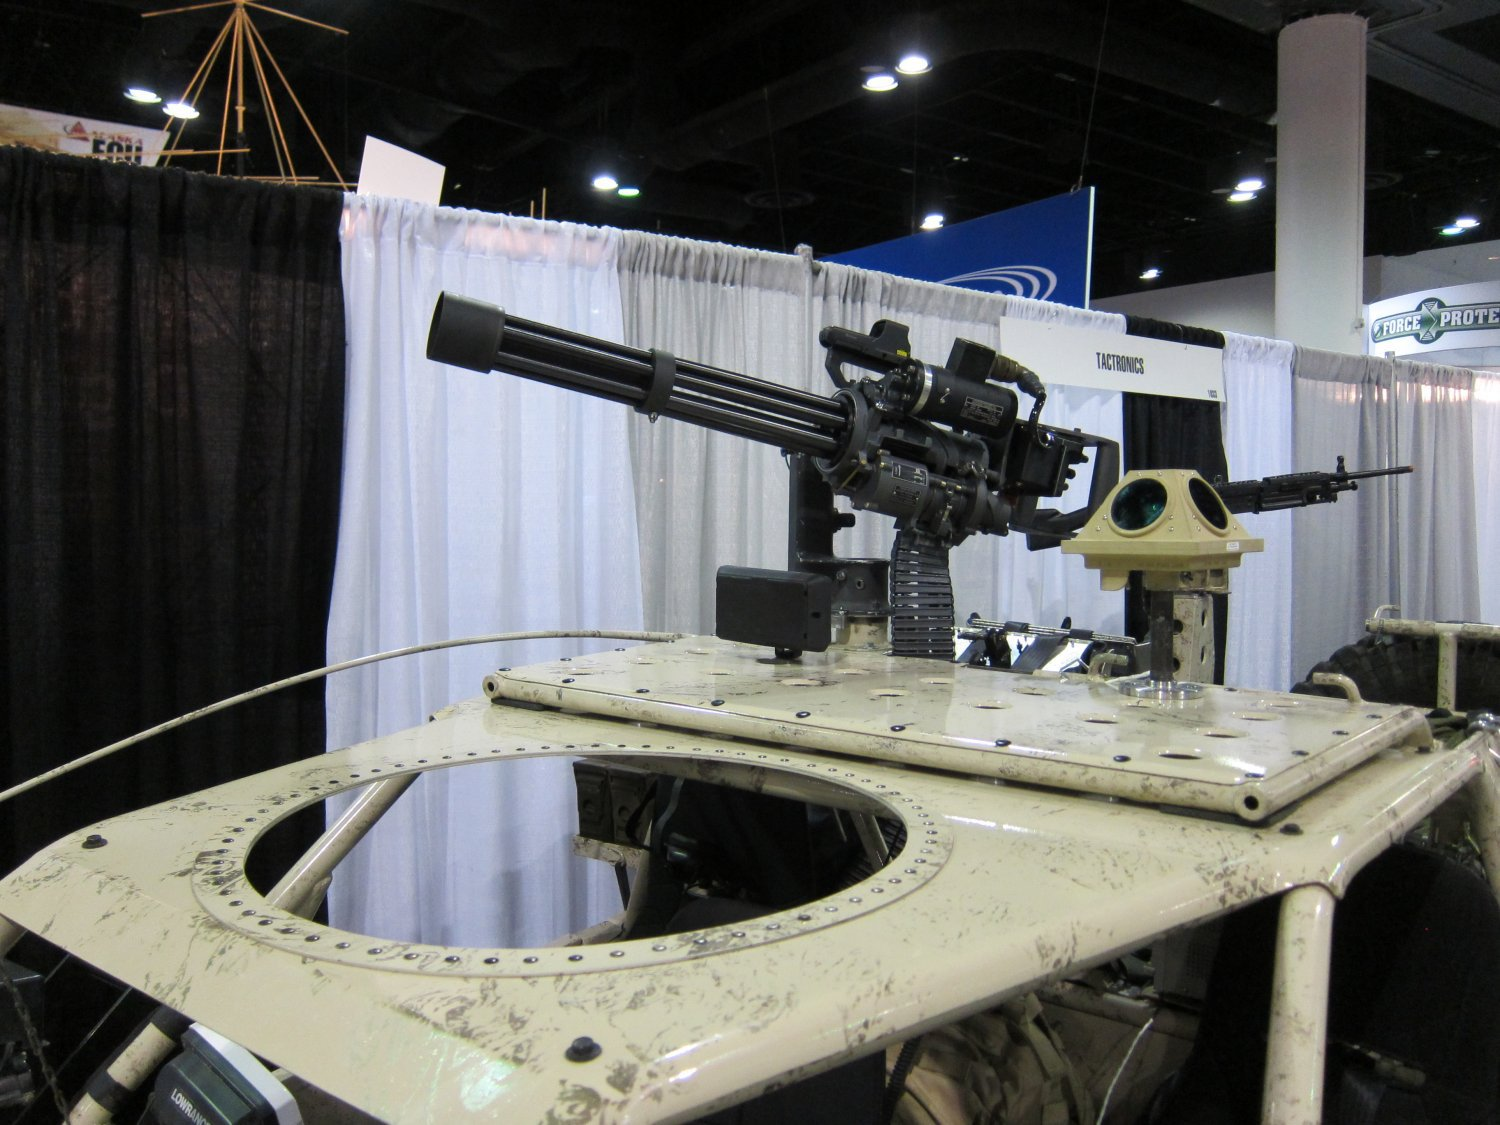 Garwood Industries M 134G Gatling Gun Minigun System SOFIC 2011 DefenseReview DR 7 BC Customs (BCC) Search and Rescue Tactical Vehicle 5 (SRTV 5) Baja Racing Type All Terrain Combat Vehicle Armed/Weaponized with 7.62mm NATO Garwood Industries (GI) M134G Minigun/Gatling Gun: SXOR Mobility Vehicles Go Tactical for Military Special Operations Forces (SOF) Missions